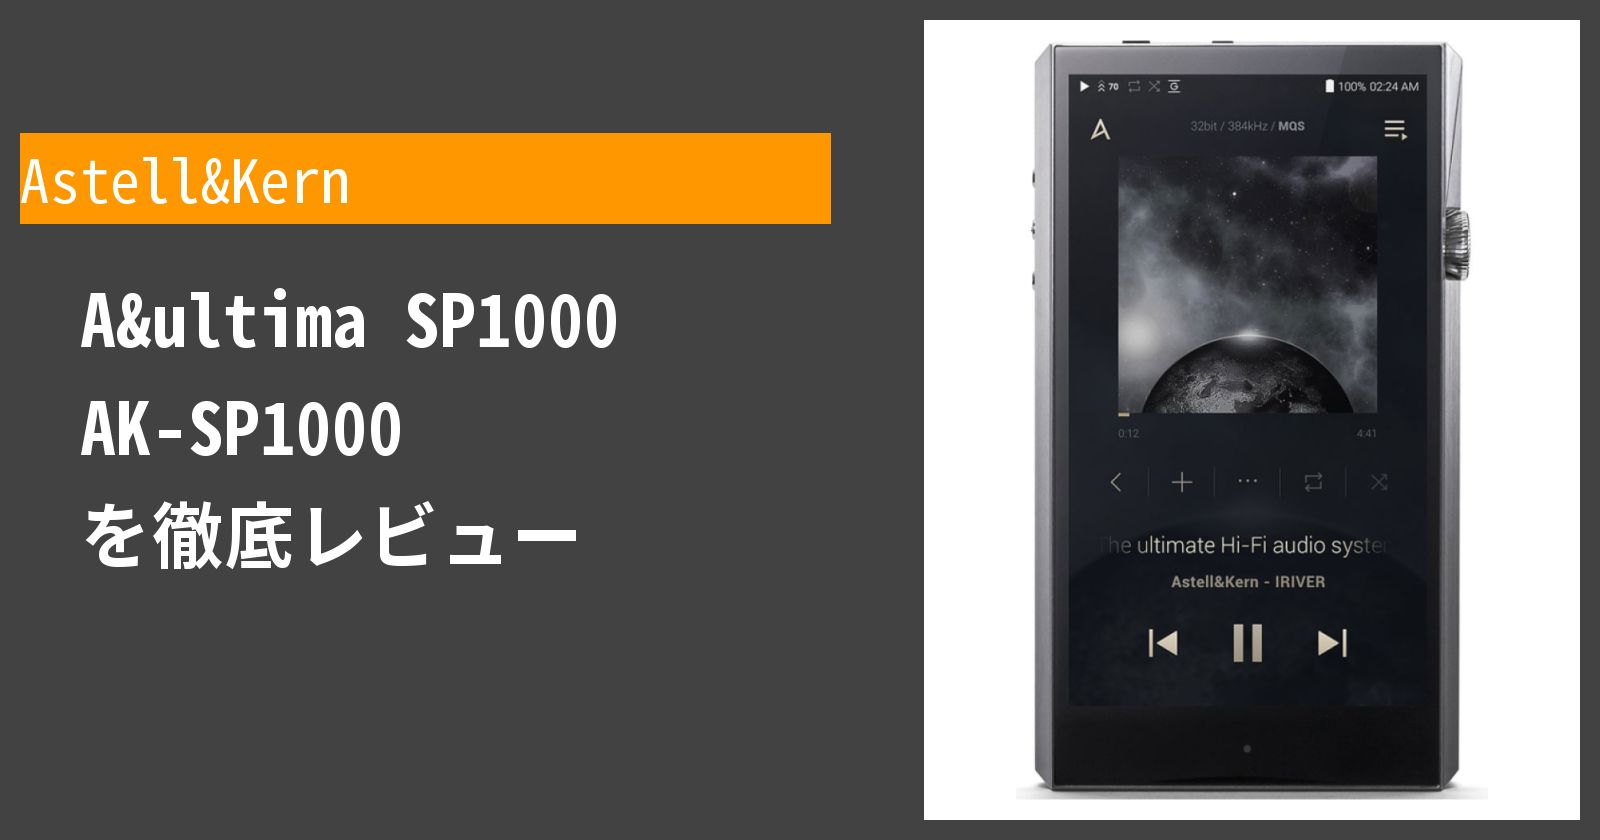 A&ultima SP1000 AK-SP1000を徹底評価